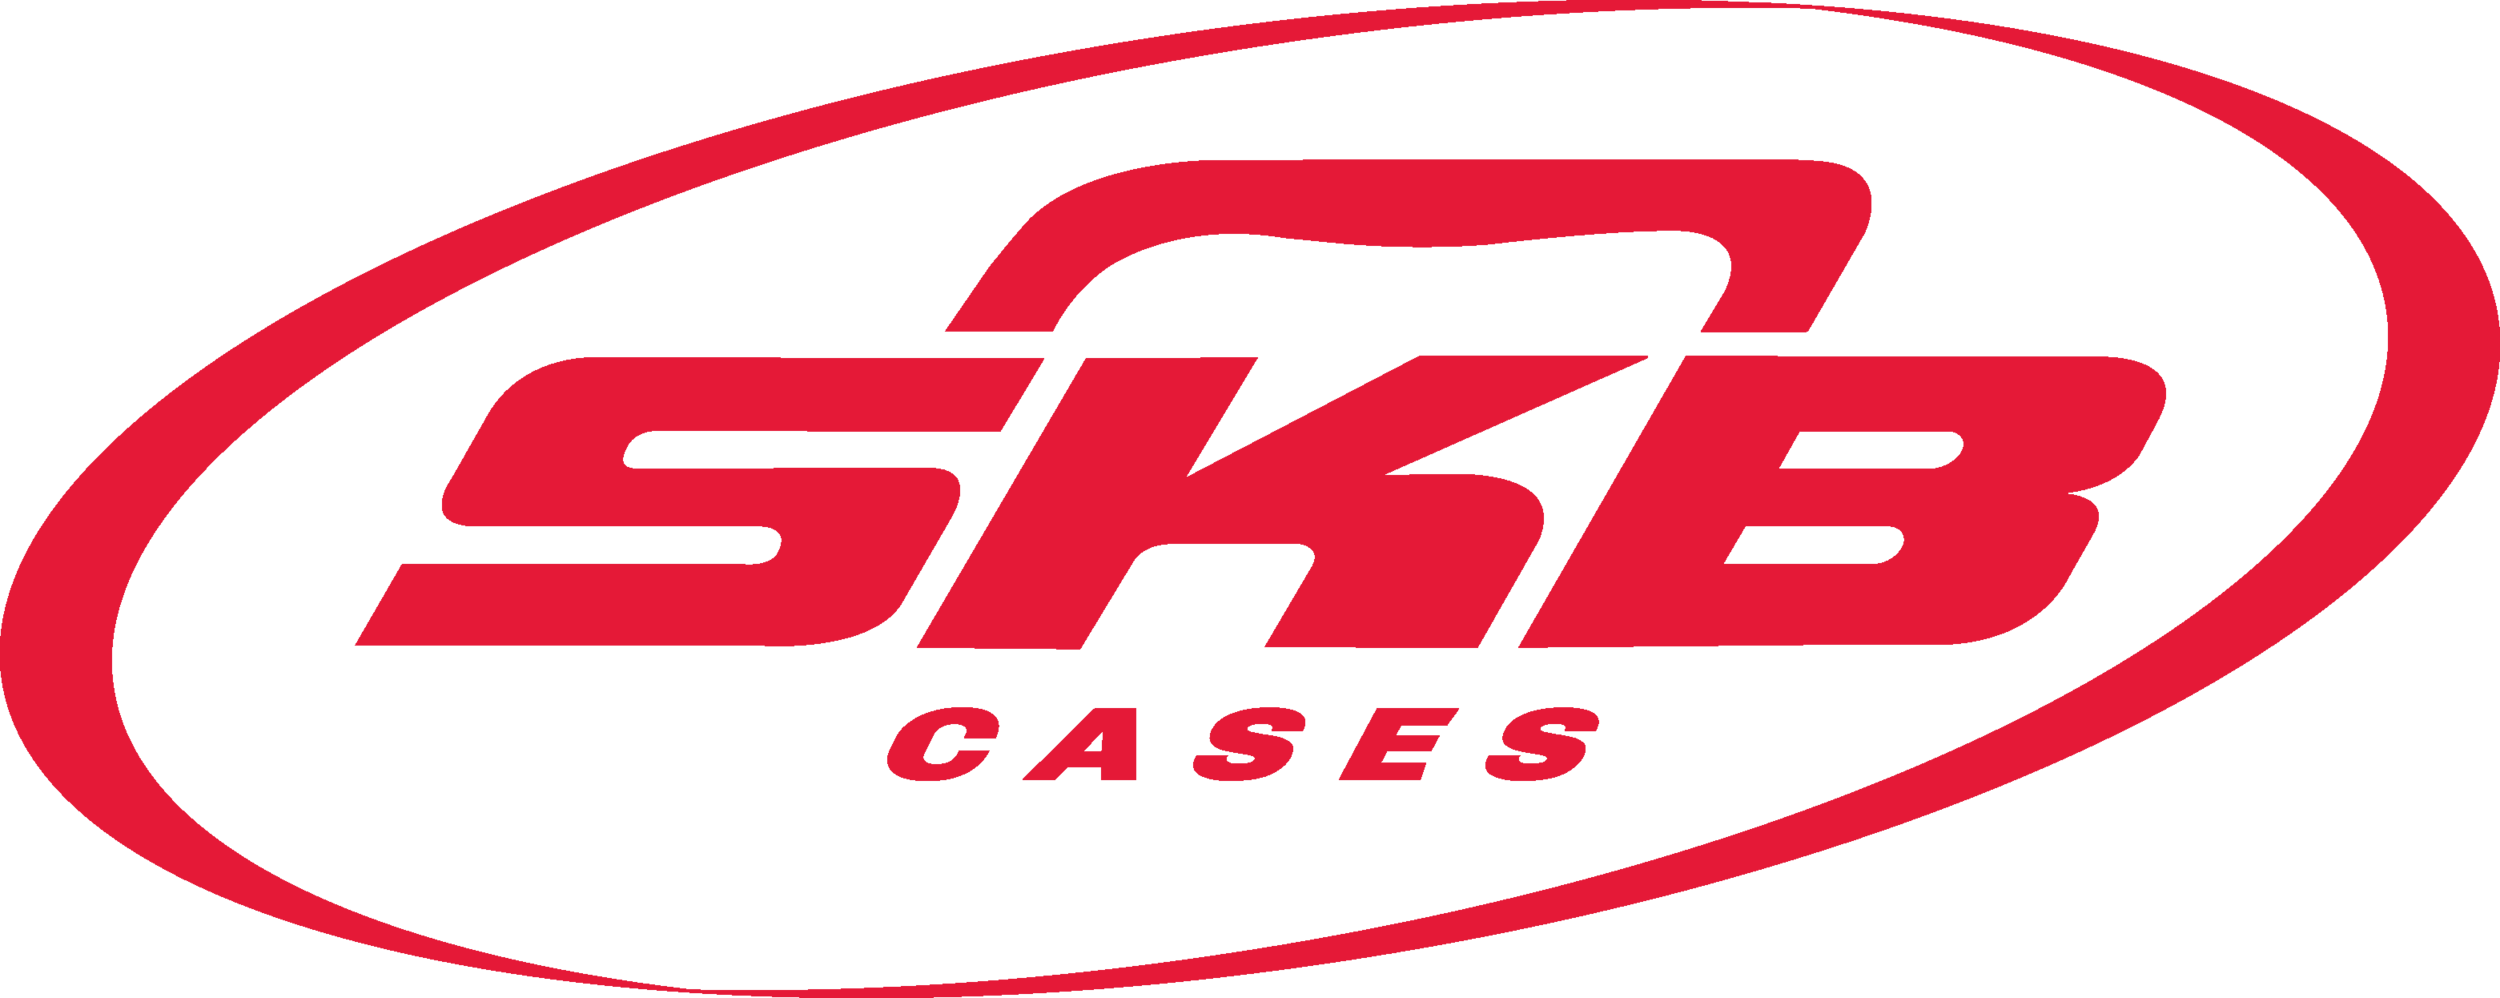 SKB Cases Logo.png